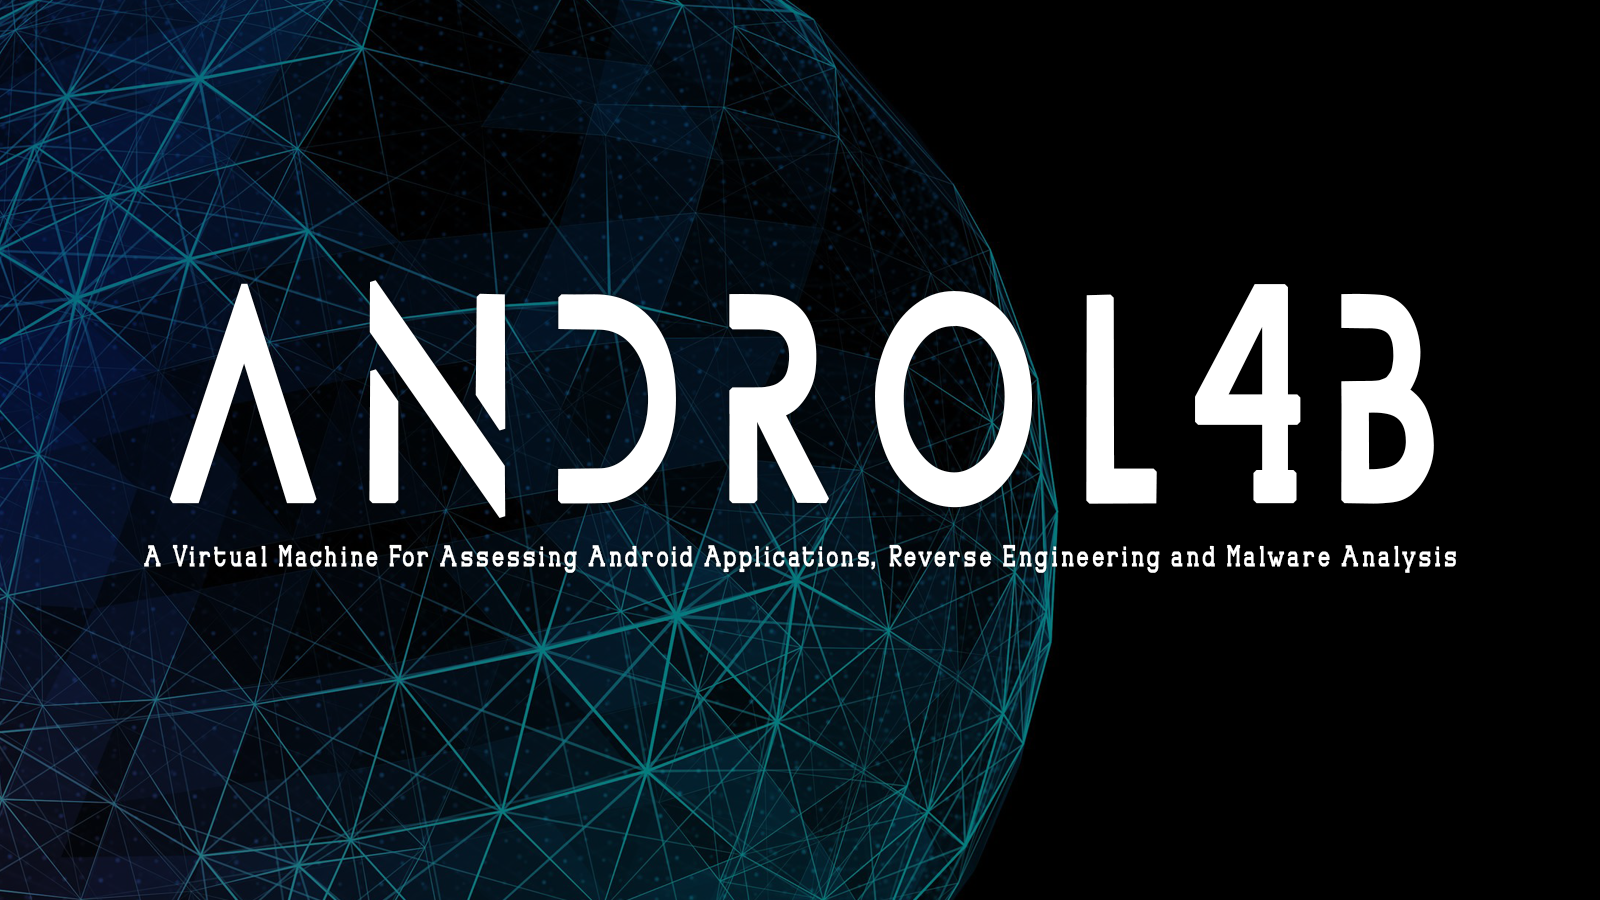 AndroL4b - A Virtual Machine For Assessing Android Applications, Reverse Engineering and Malware Analysis